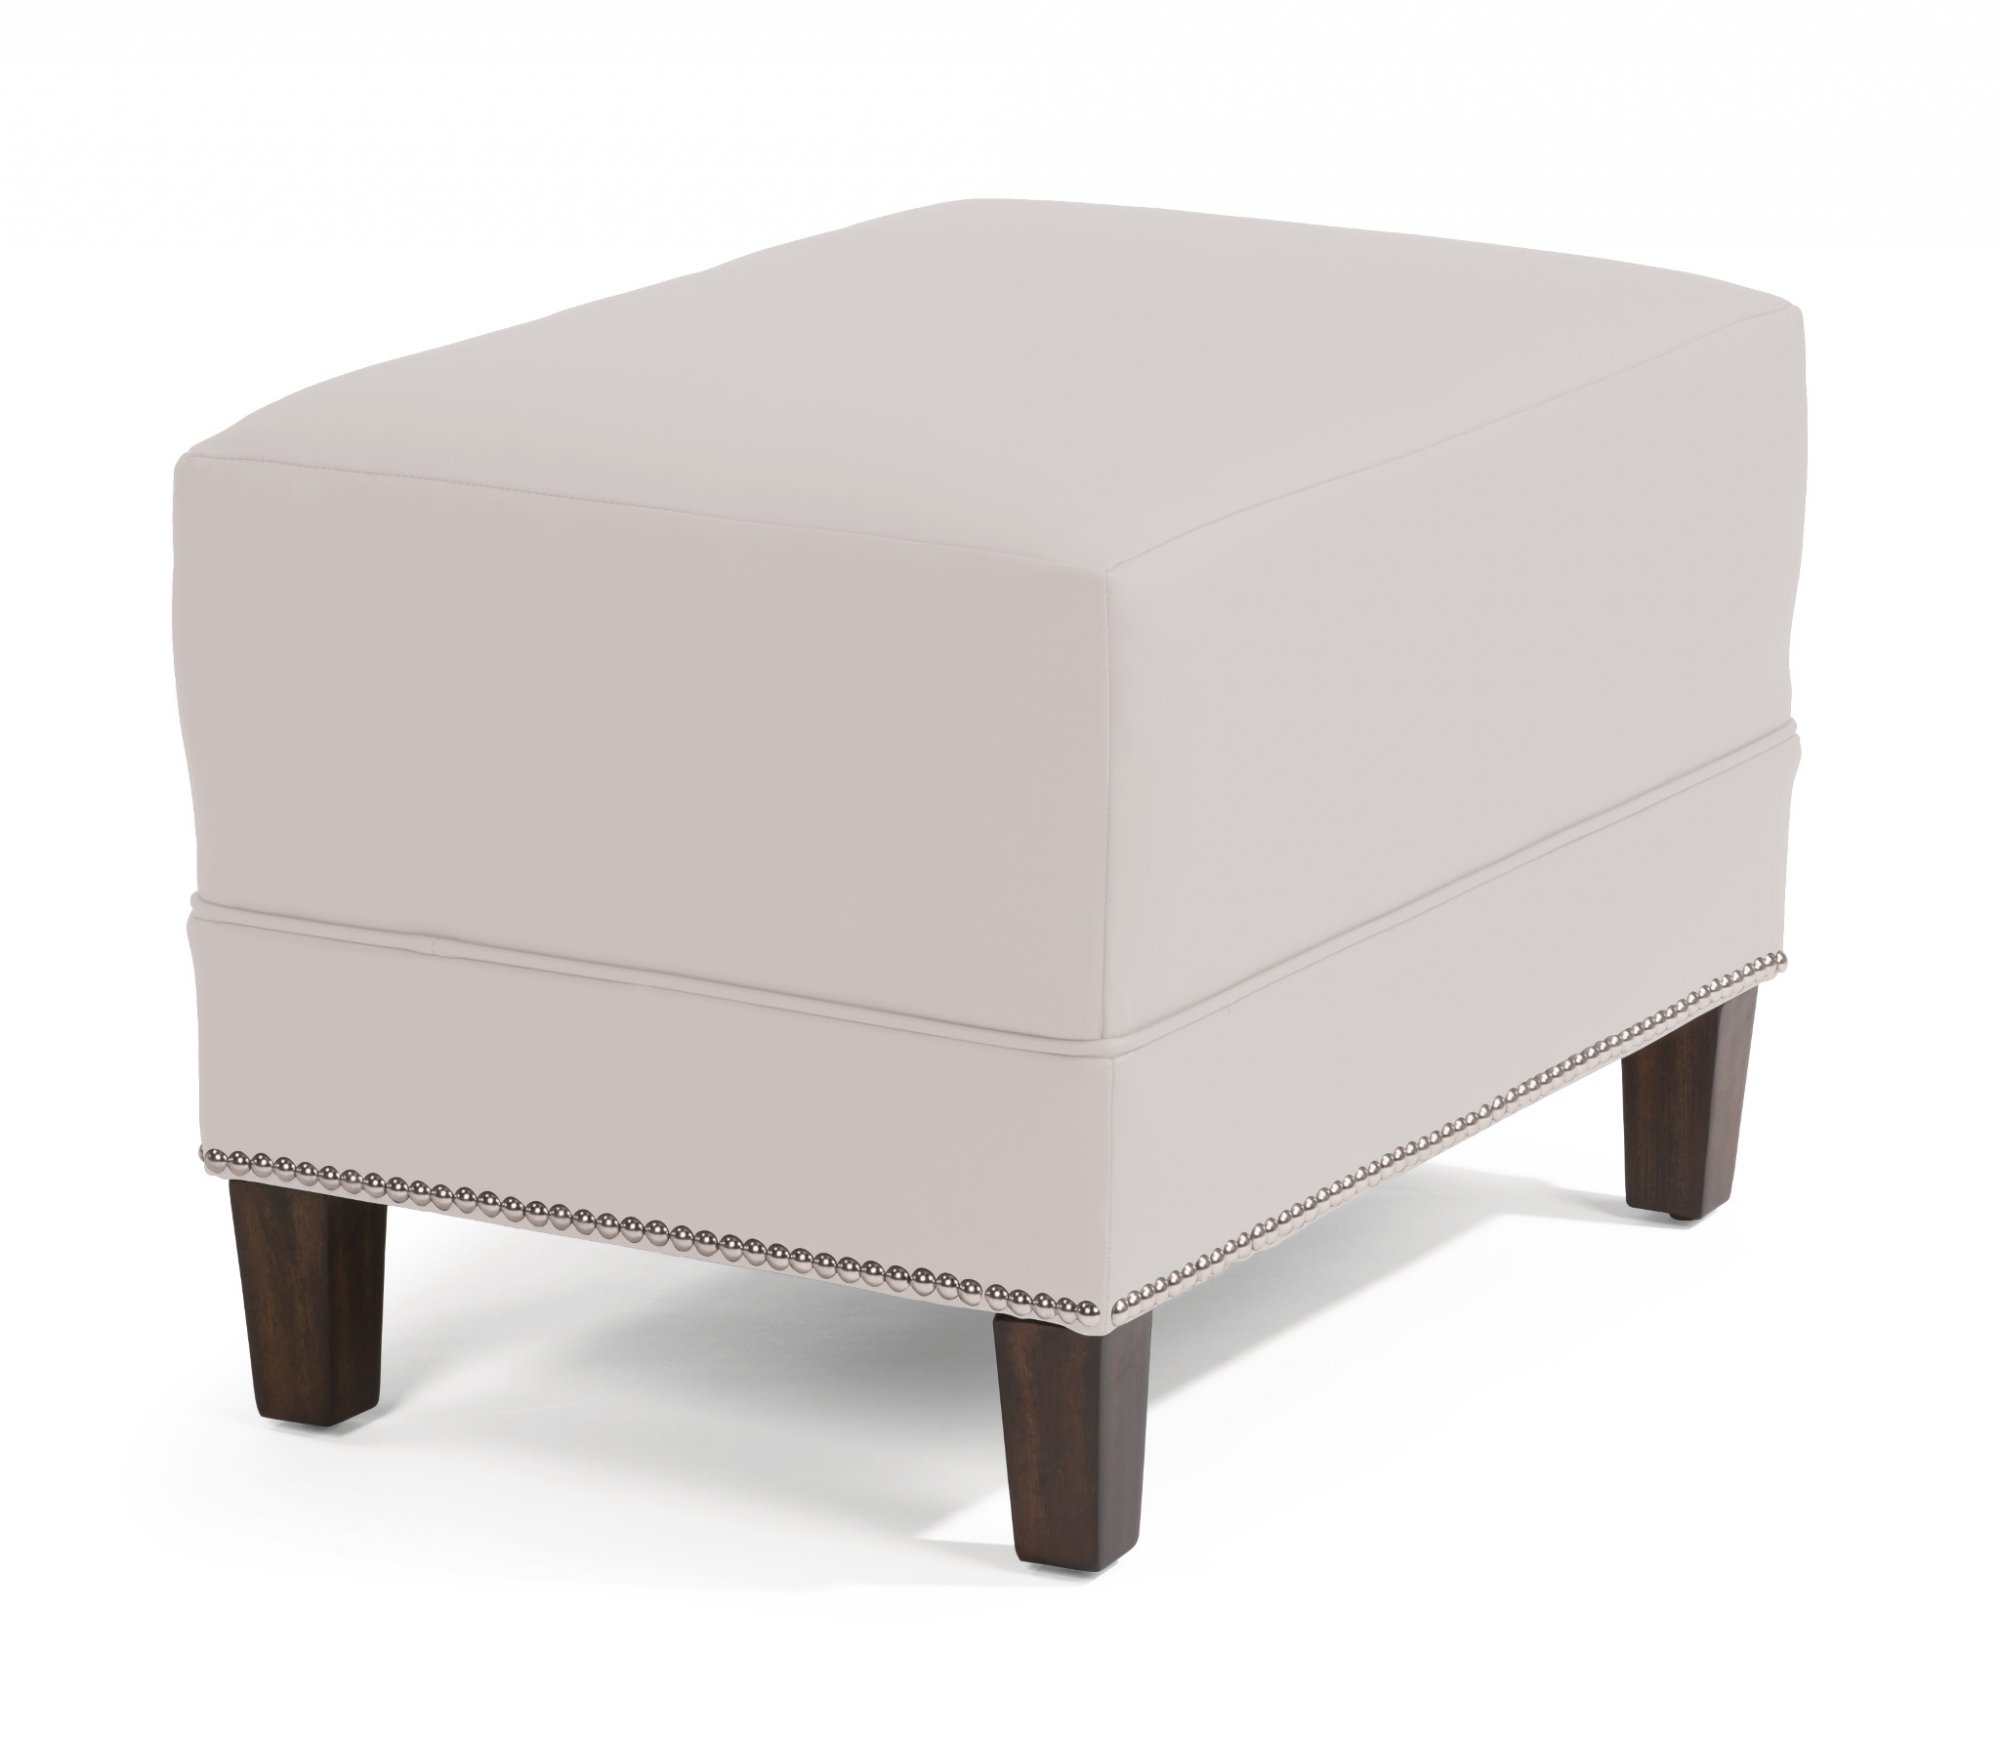 Tremendous Flexsteel Ca749 08 Vault Ottoman Highway Appliance Inzonedesignstudio Interior Chair Design Inzonedesignstudiocom